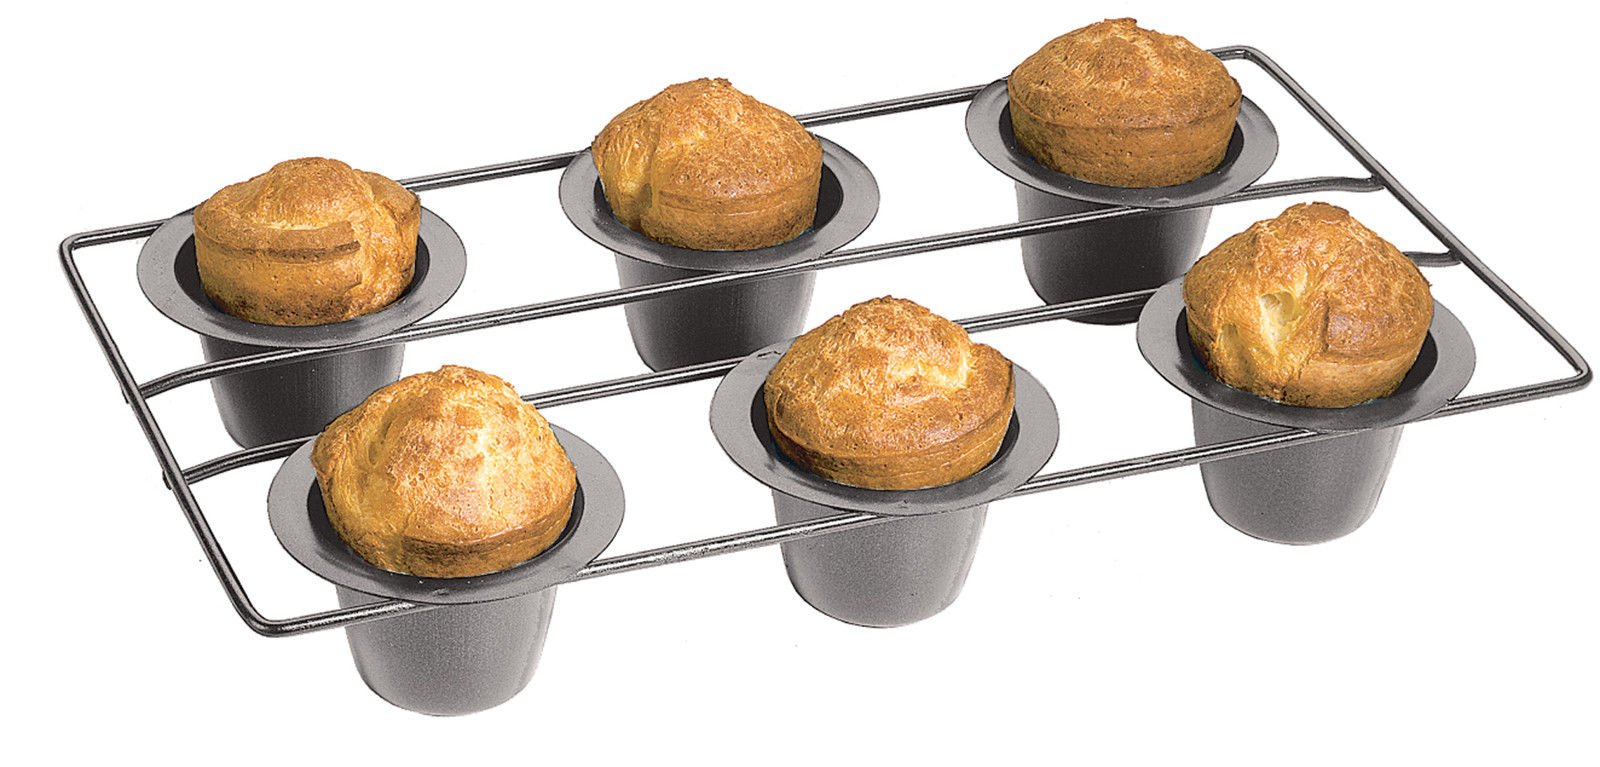 Fox Run Nonstick 6 Cup Linking Popover Muffin Pan Baking Bakeware Breakfast by Fox Run (Image #1)